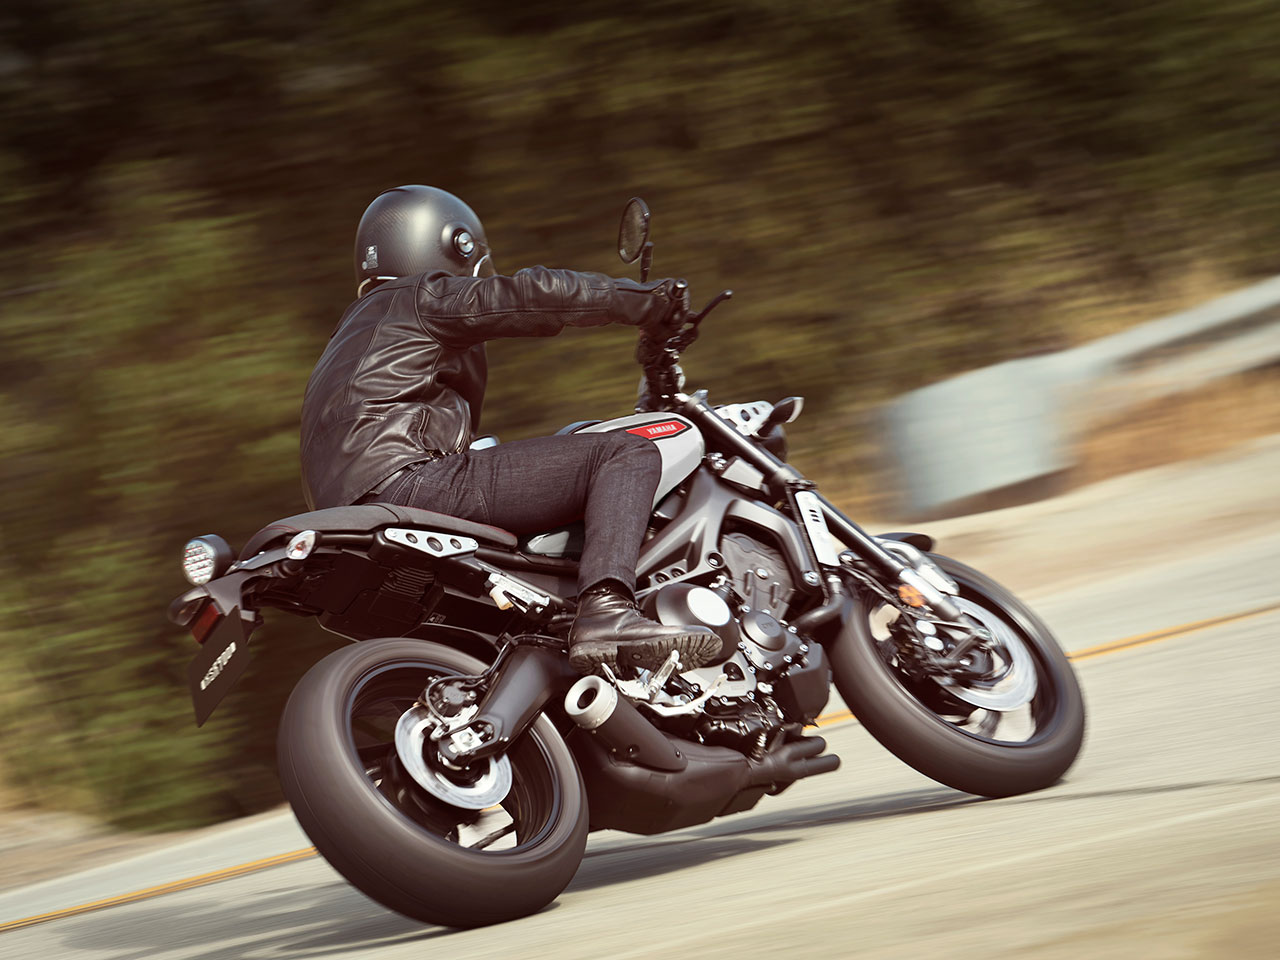 Yamaha XSR900 motorcycle riding on the road